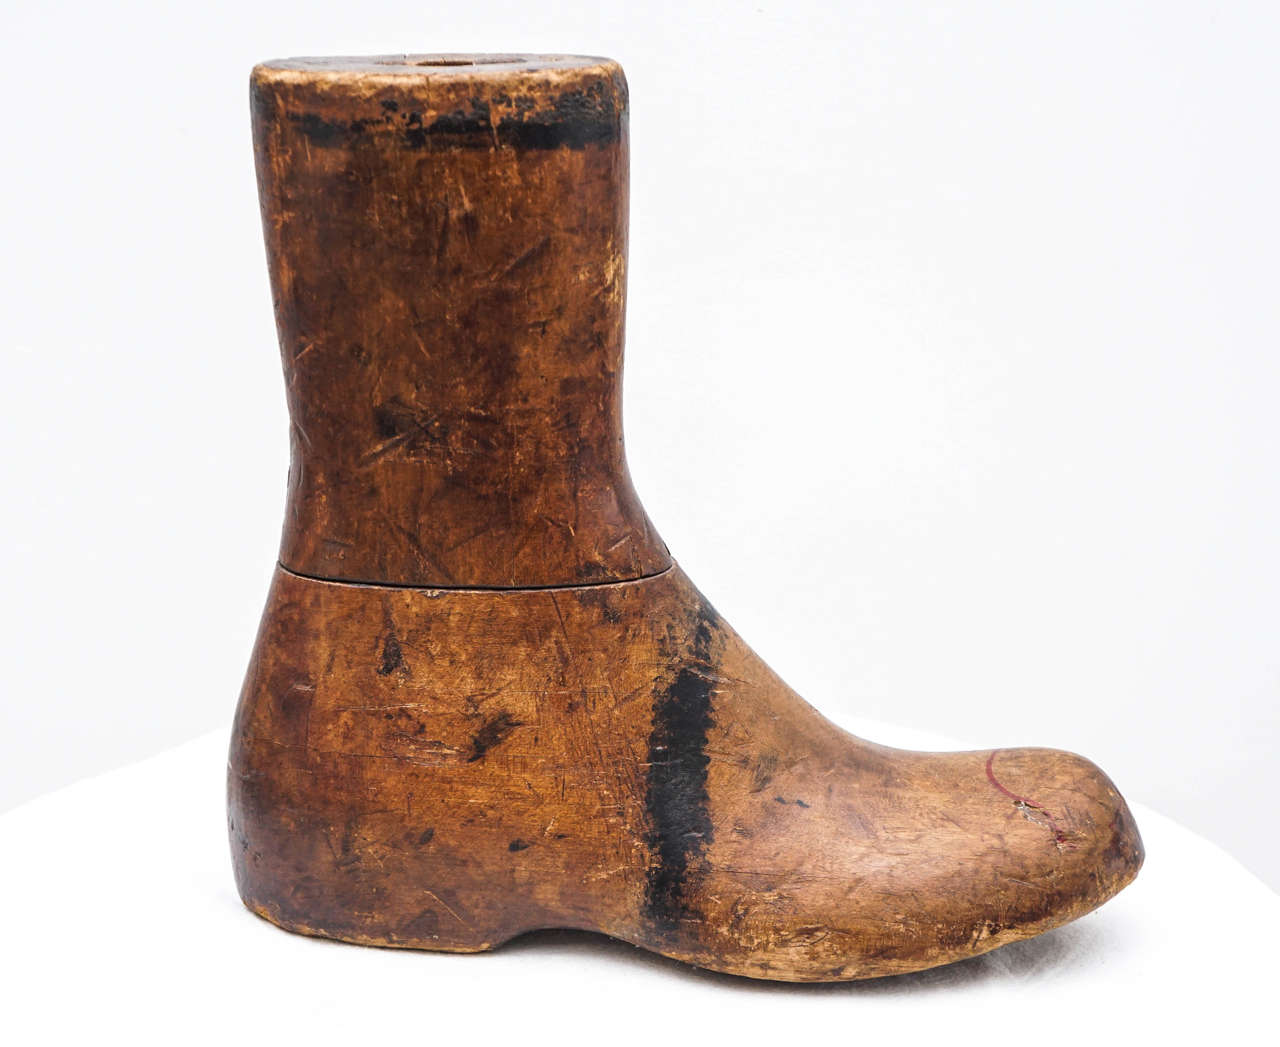 American Colonial Old Wooden Foot or Boot Form For Sale